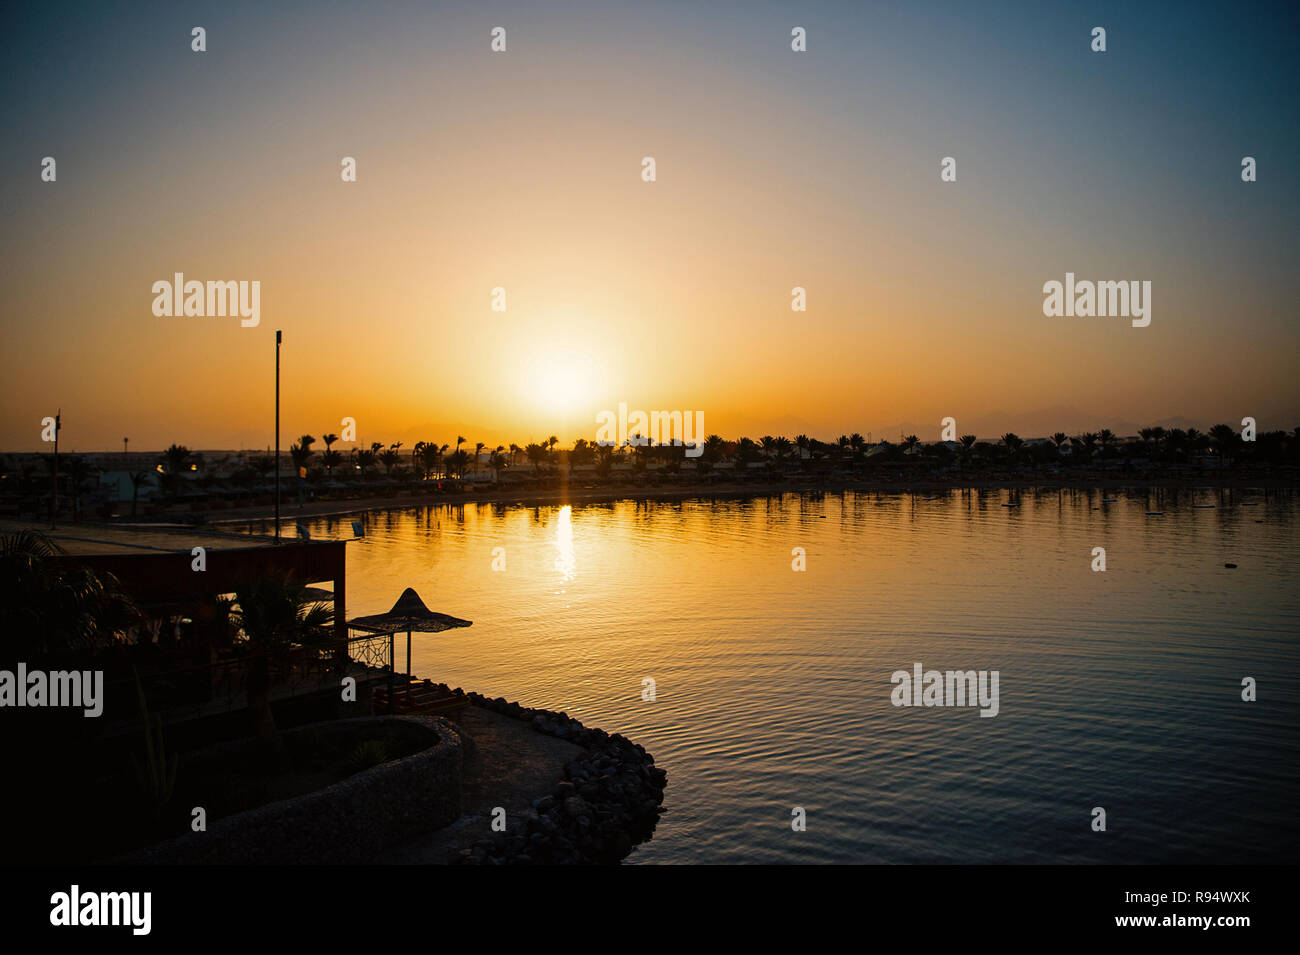 Calm tropical beach, sea or ocean water coast, of seaside resort with dark silhouettes of palm trees during sunset or sundown in evening dusk on clear, grey sky background. Idyllic summer vacation - Stock Image